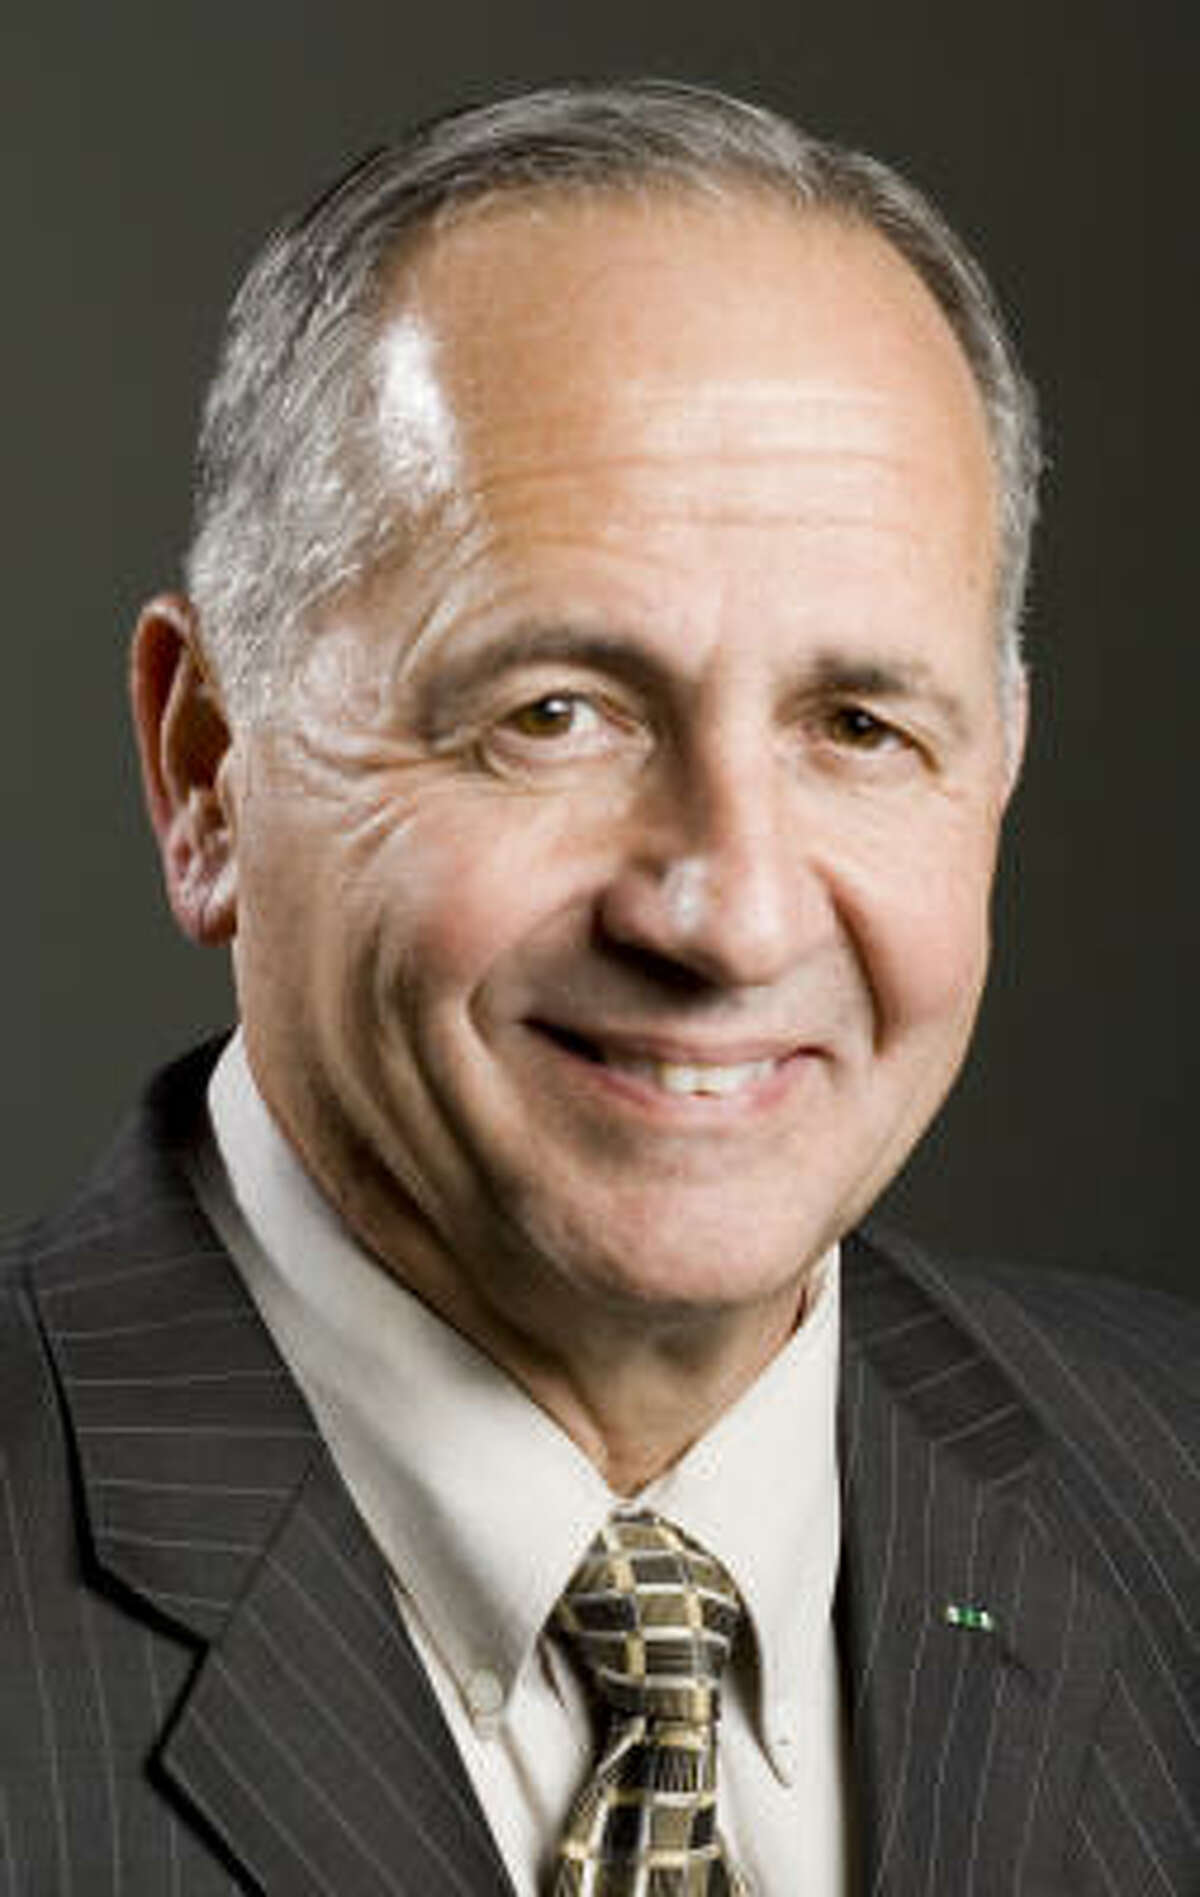 Harris County district attorney Republican candidate Jim Leitner.